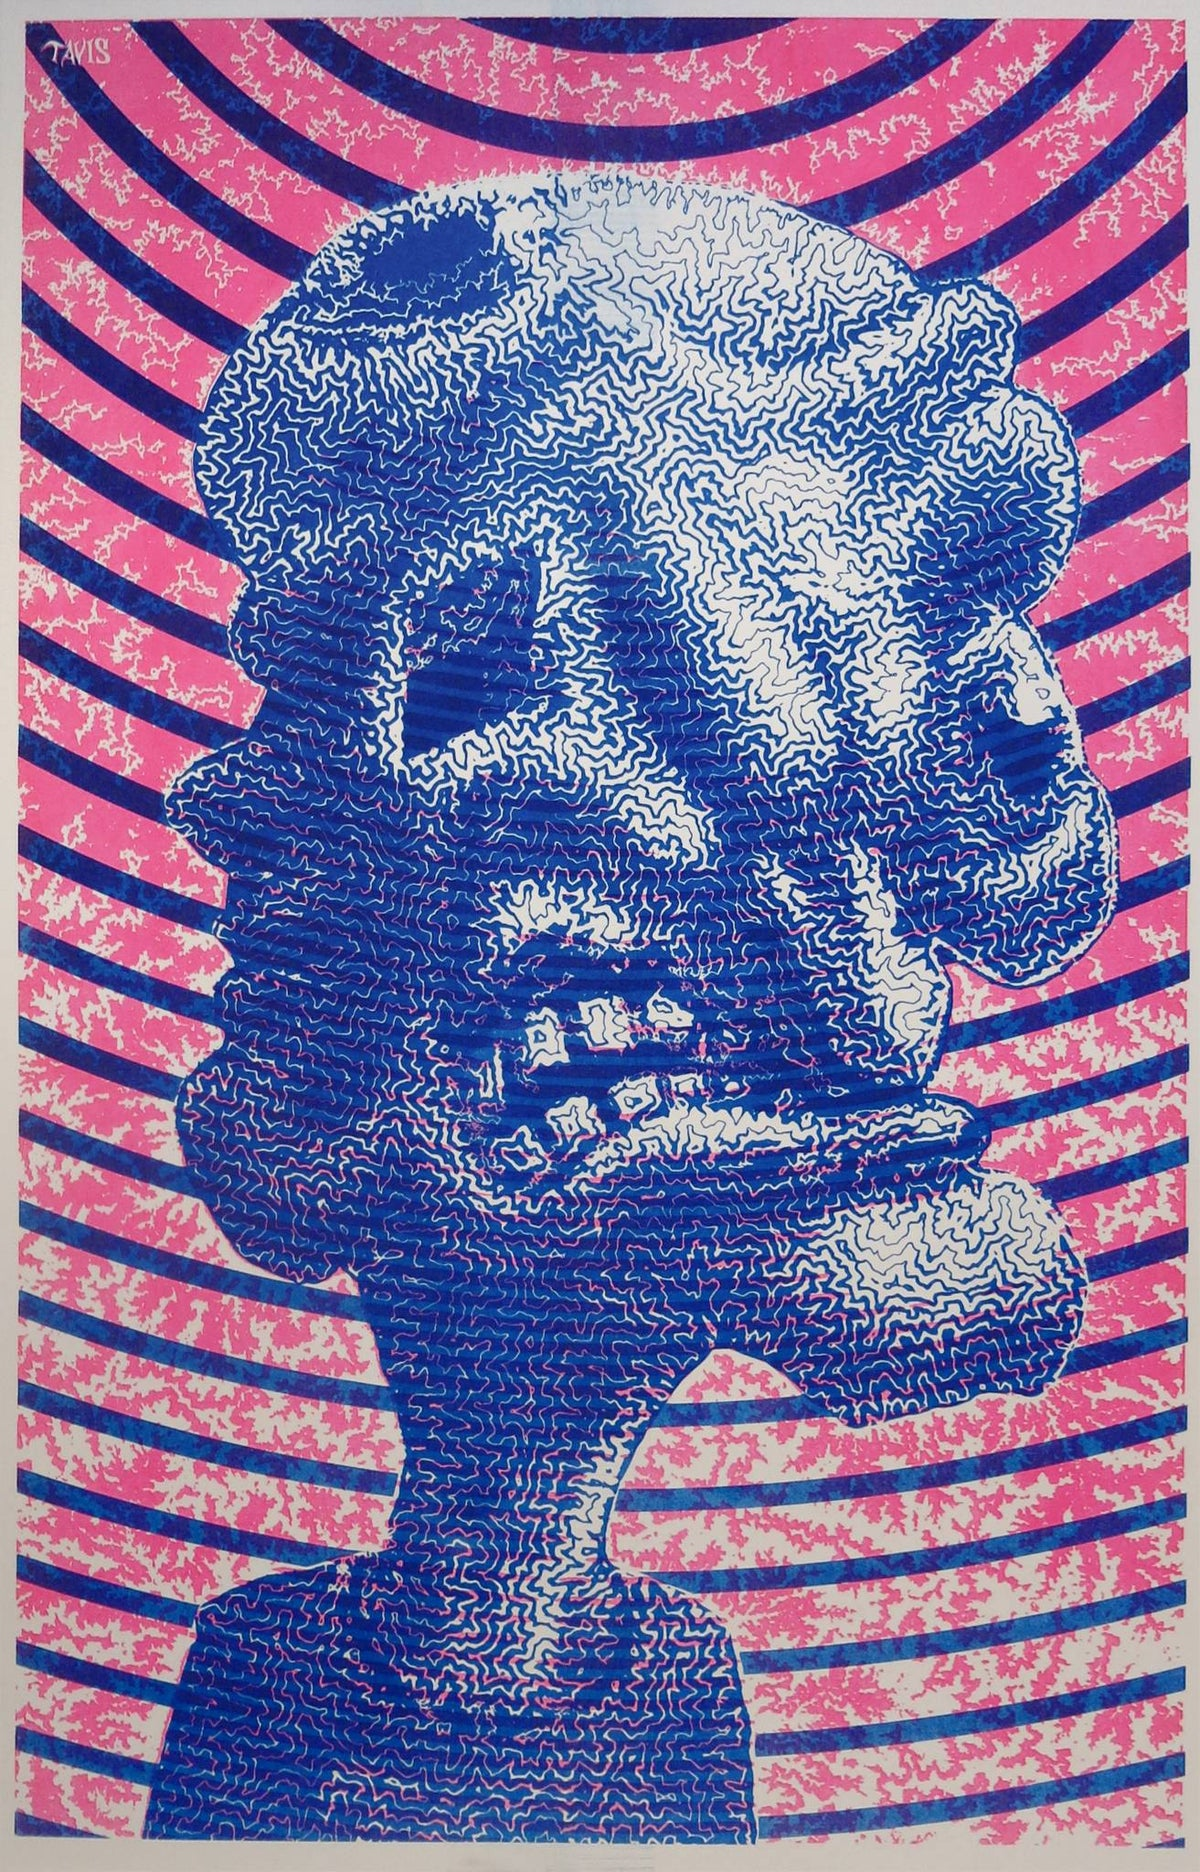 """The Excorcist"" 2-color risograph print on 11 x 17 paper, limited edition of 100"